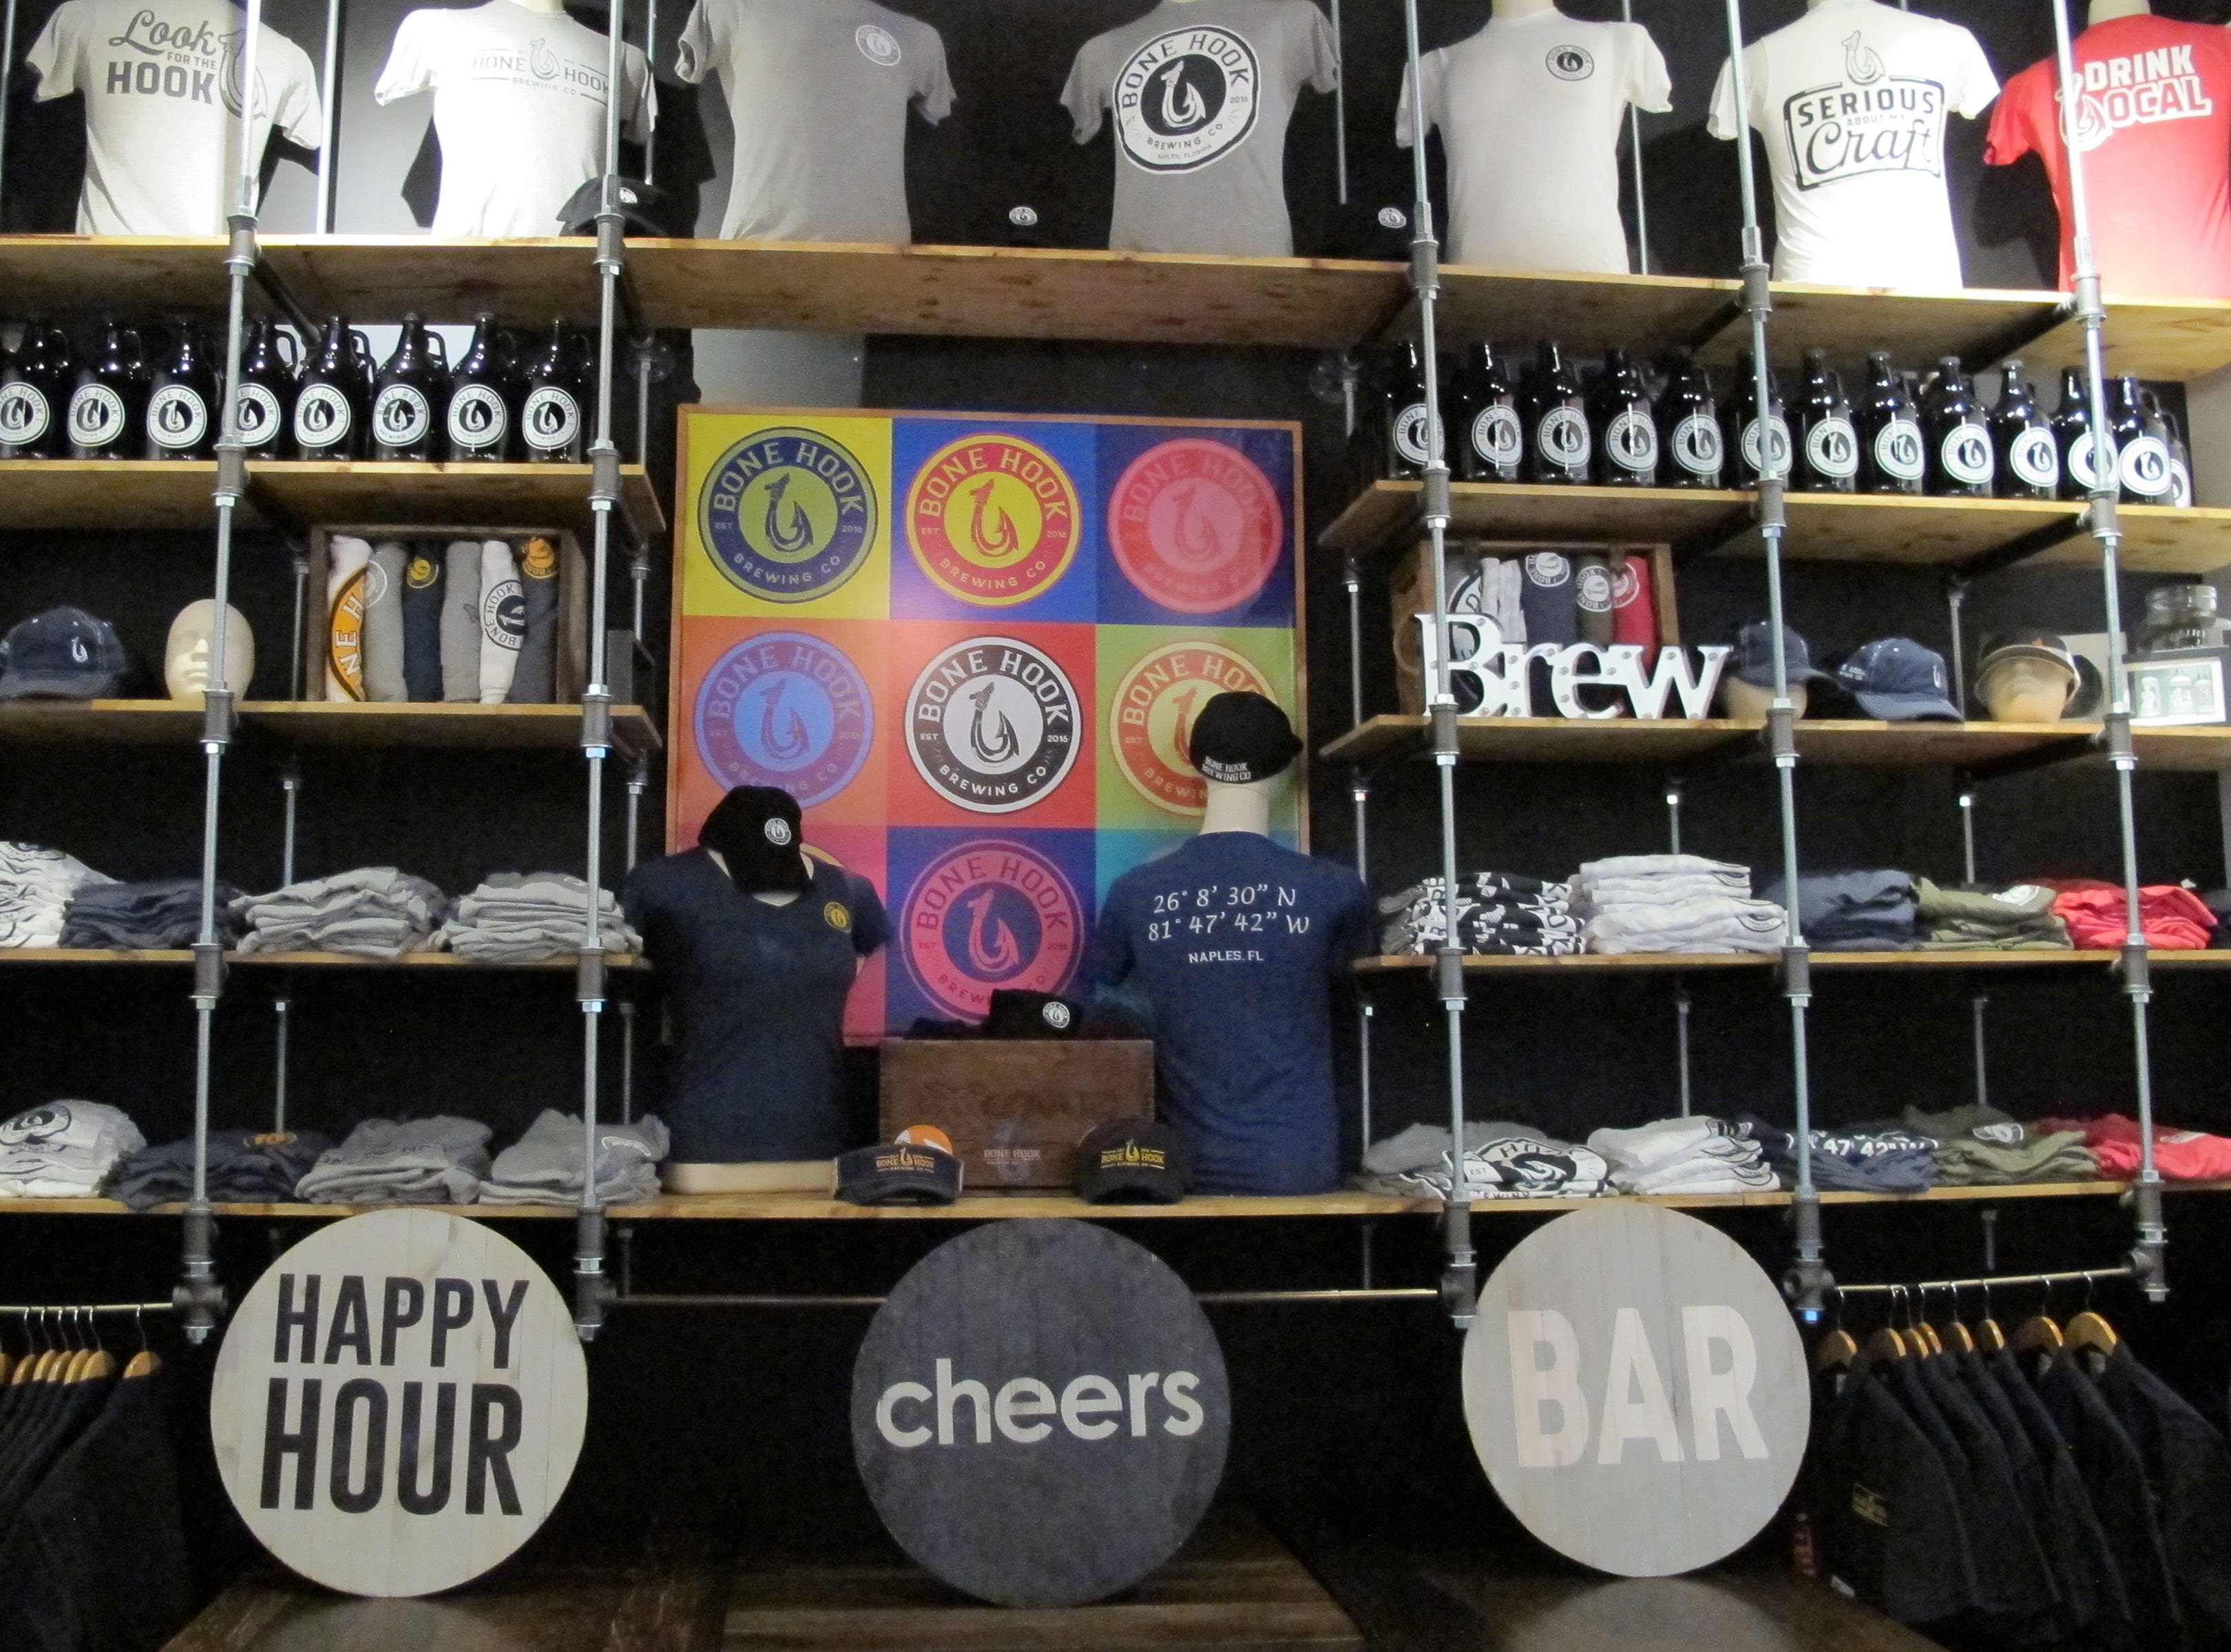 Merchandise available at Bone Hook Brewing Co., which recently expanded its space, creating an entirely new venue with a food menu for lunch and dinner.